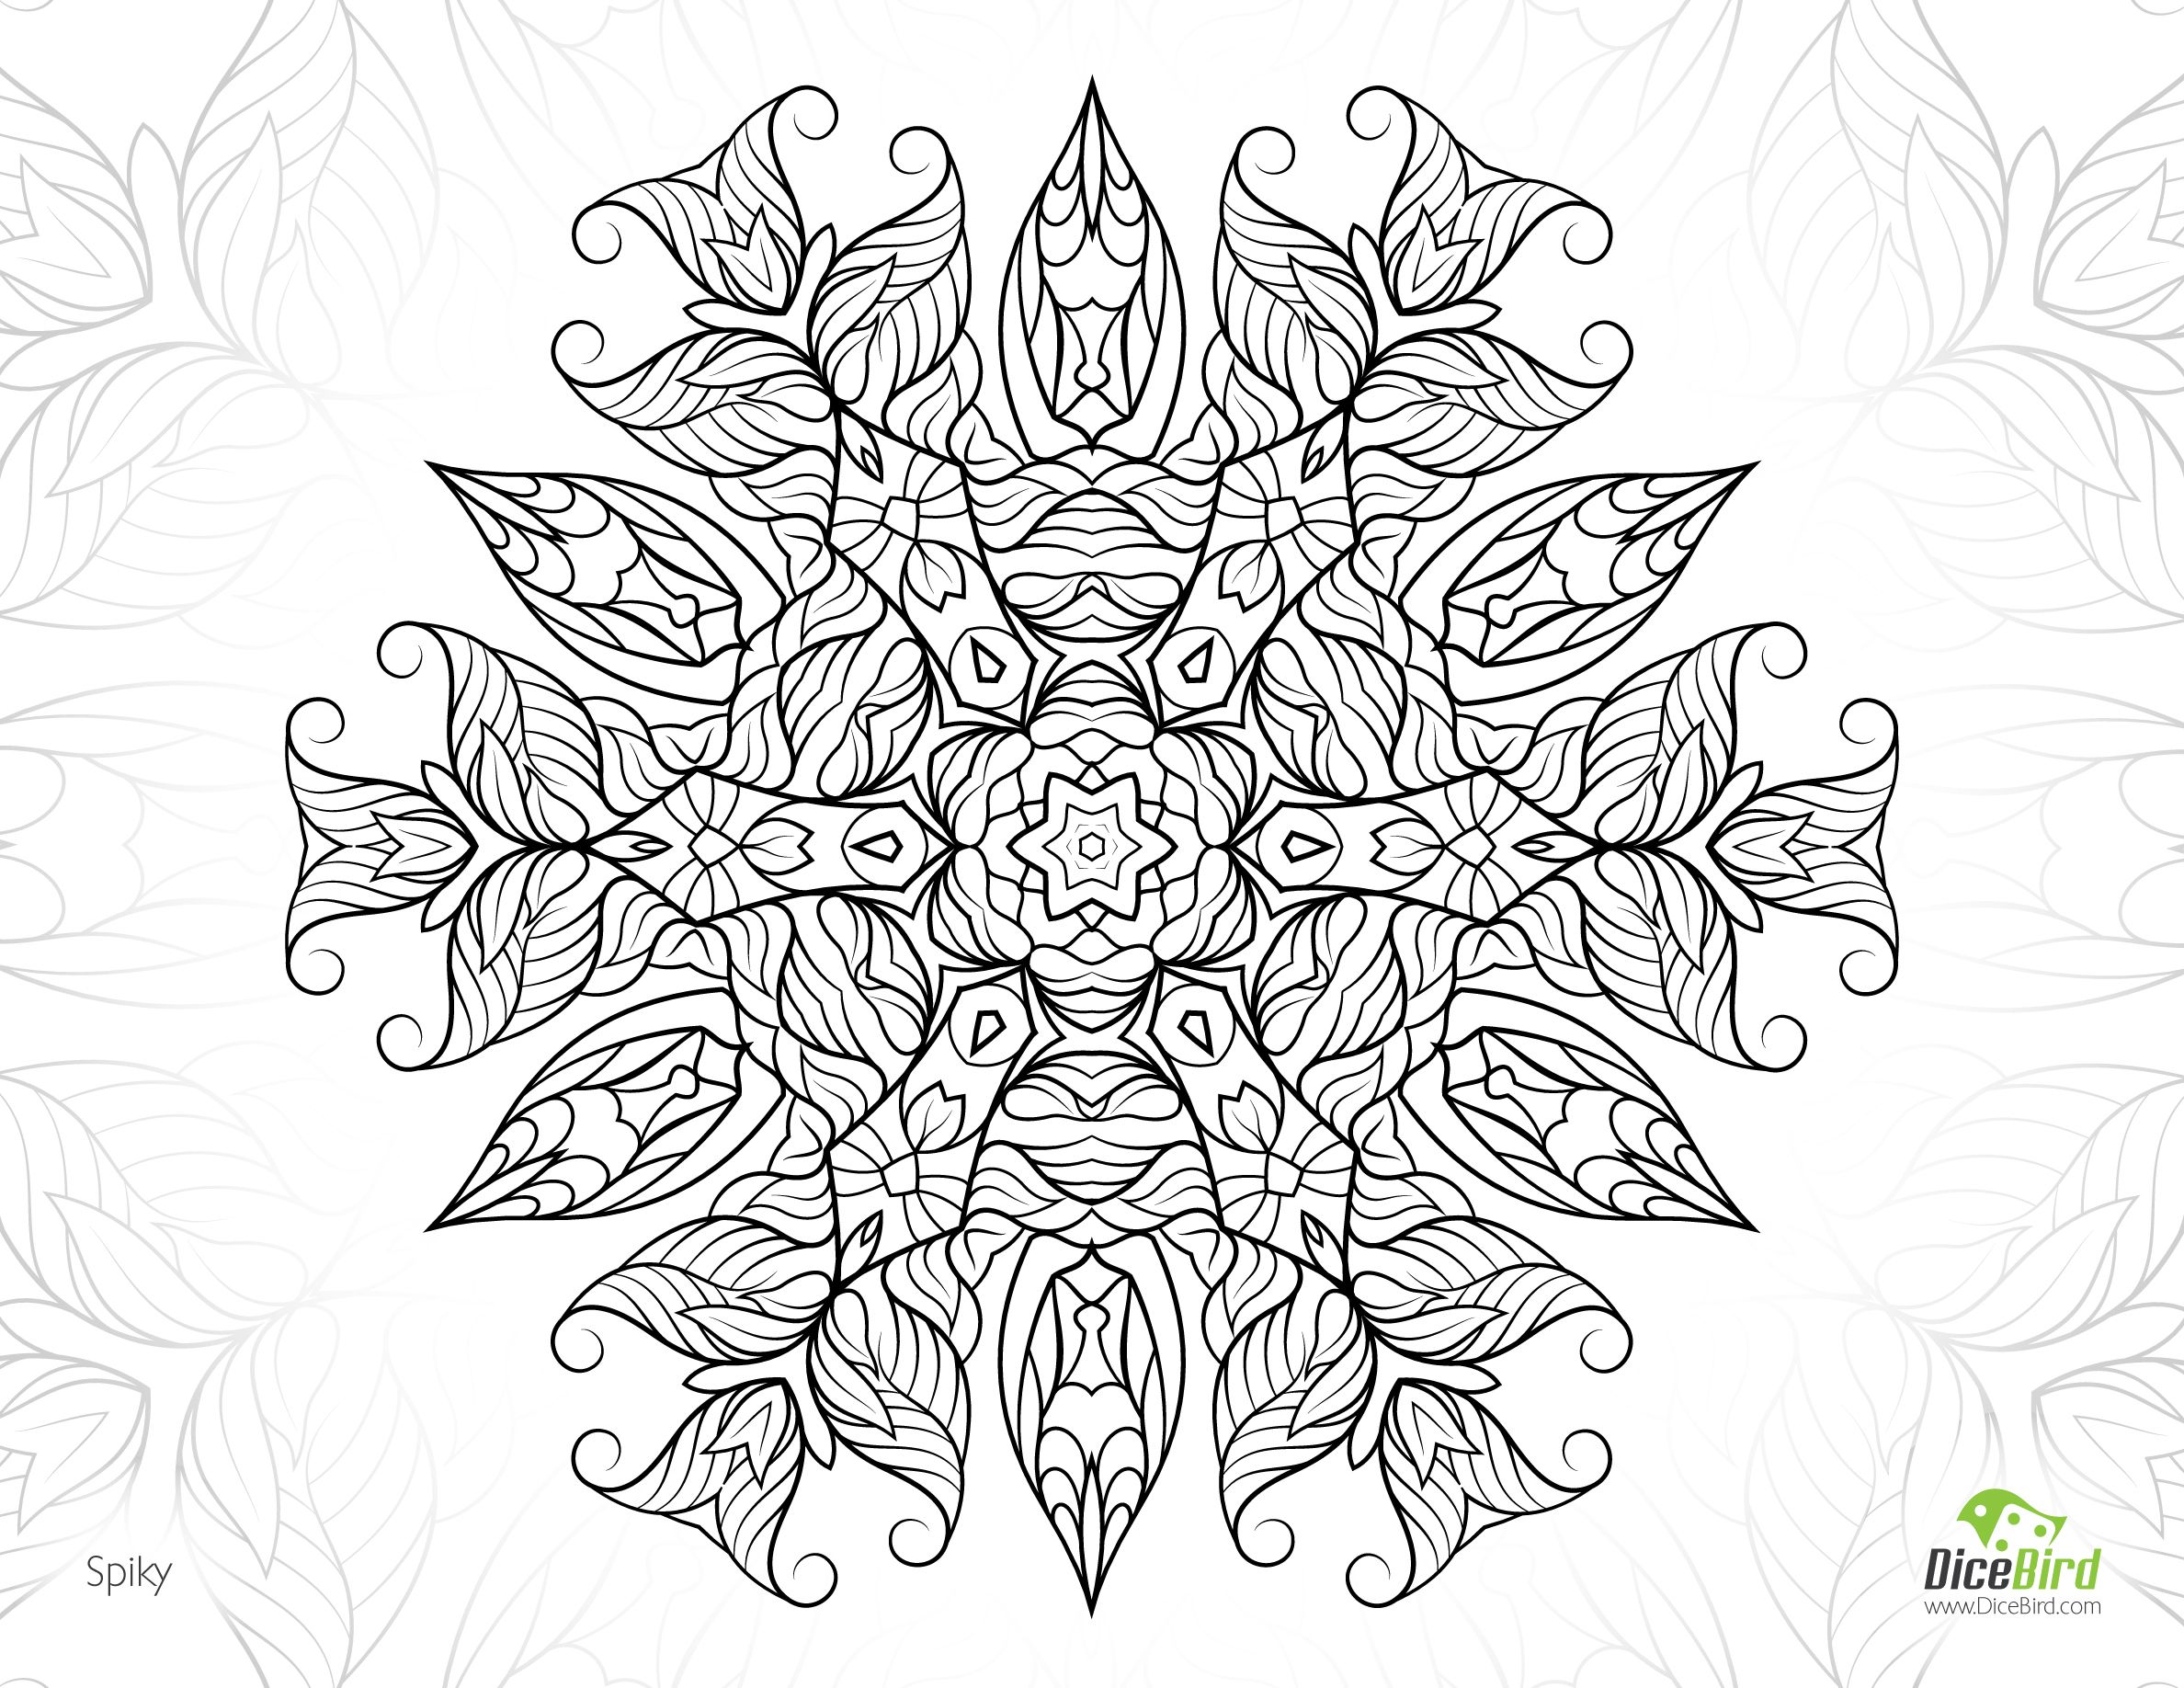 Spiky Jungle Flower Hard Coloring Pages For Adults Adult